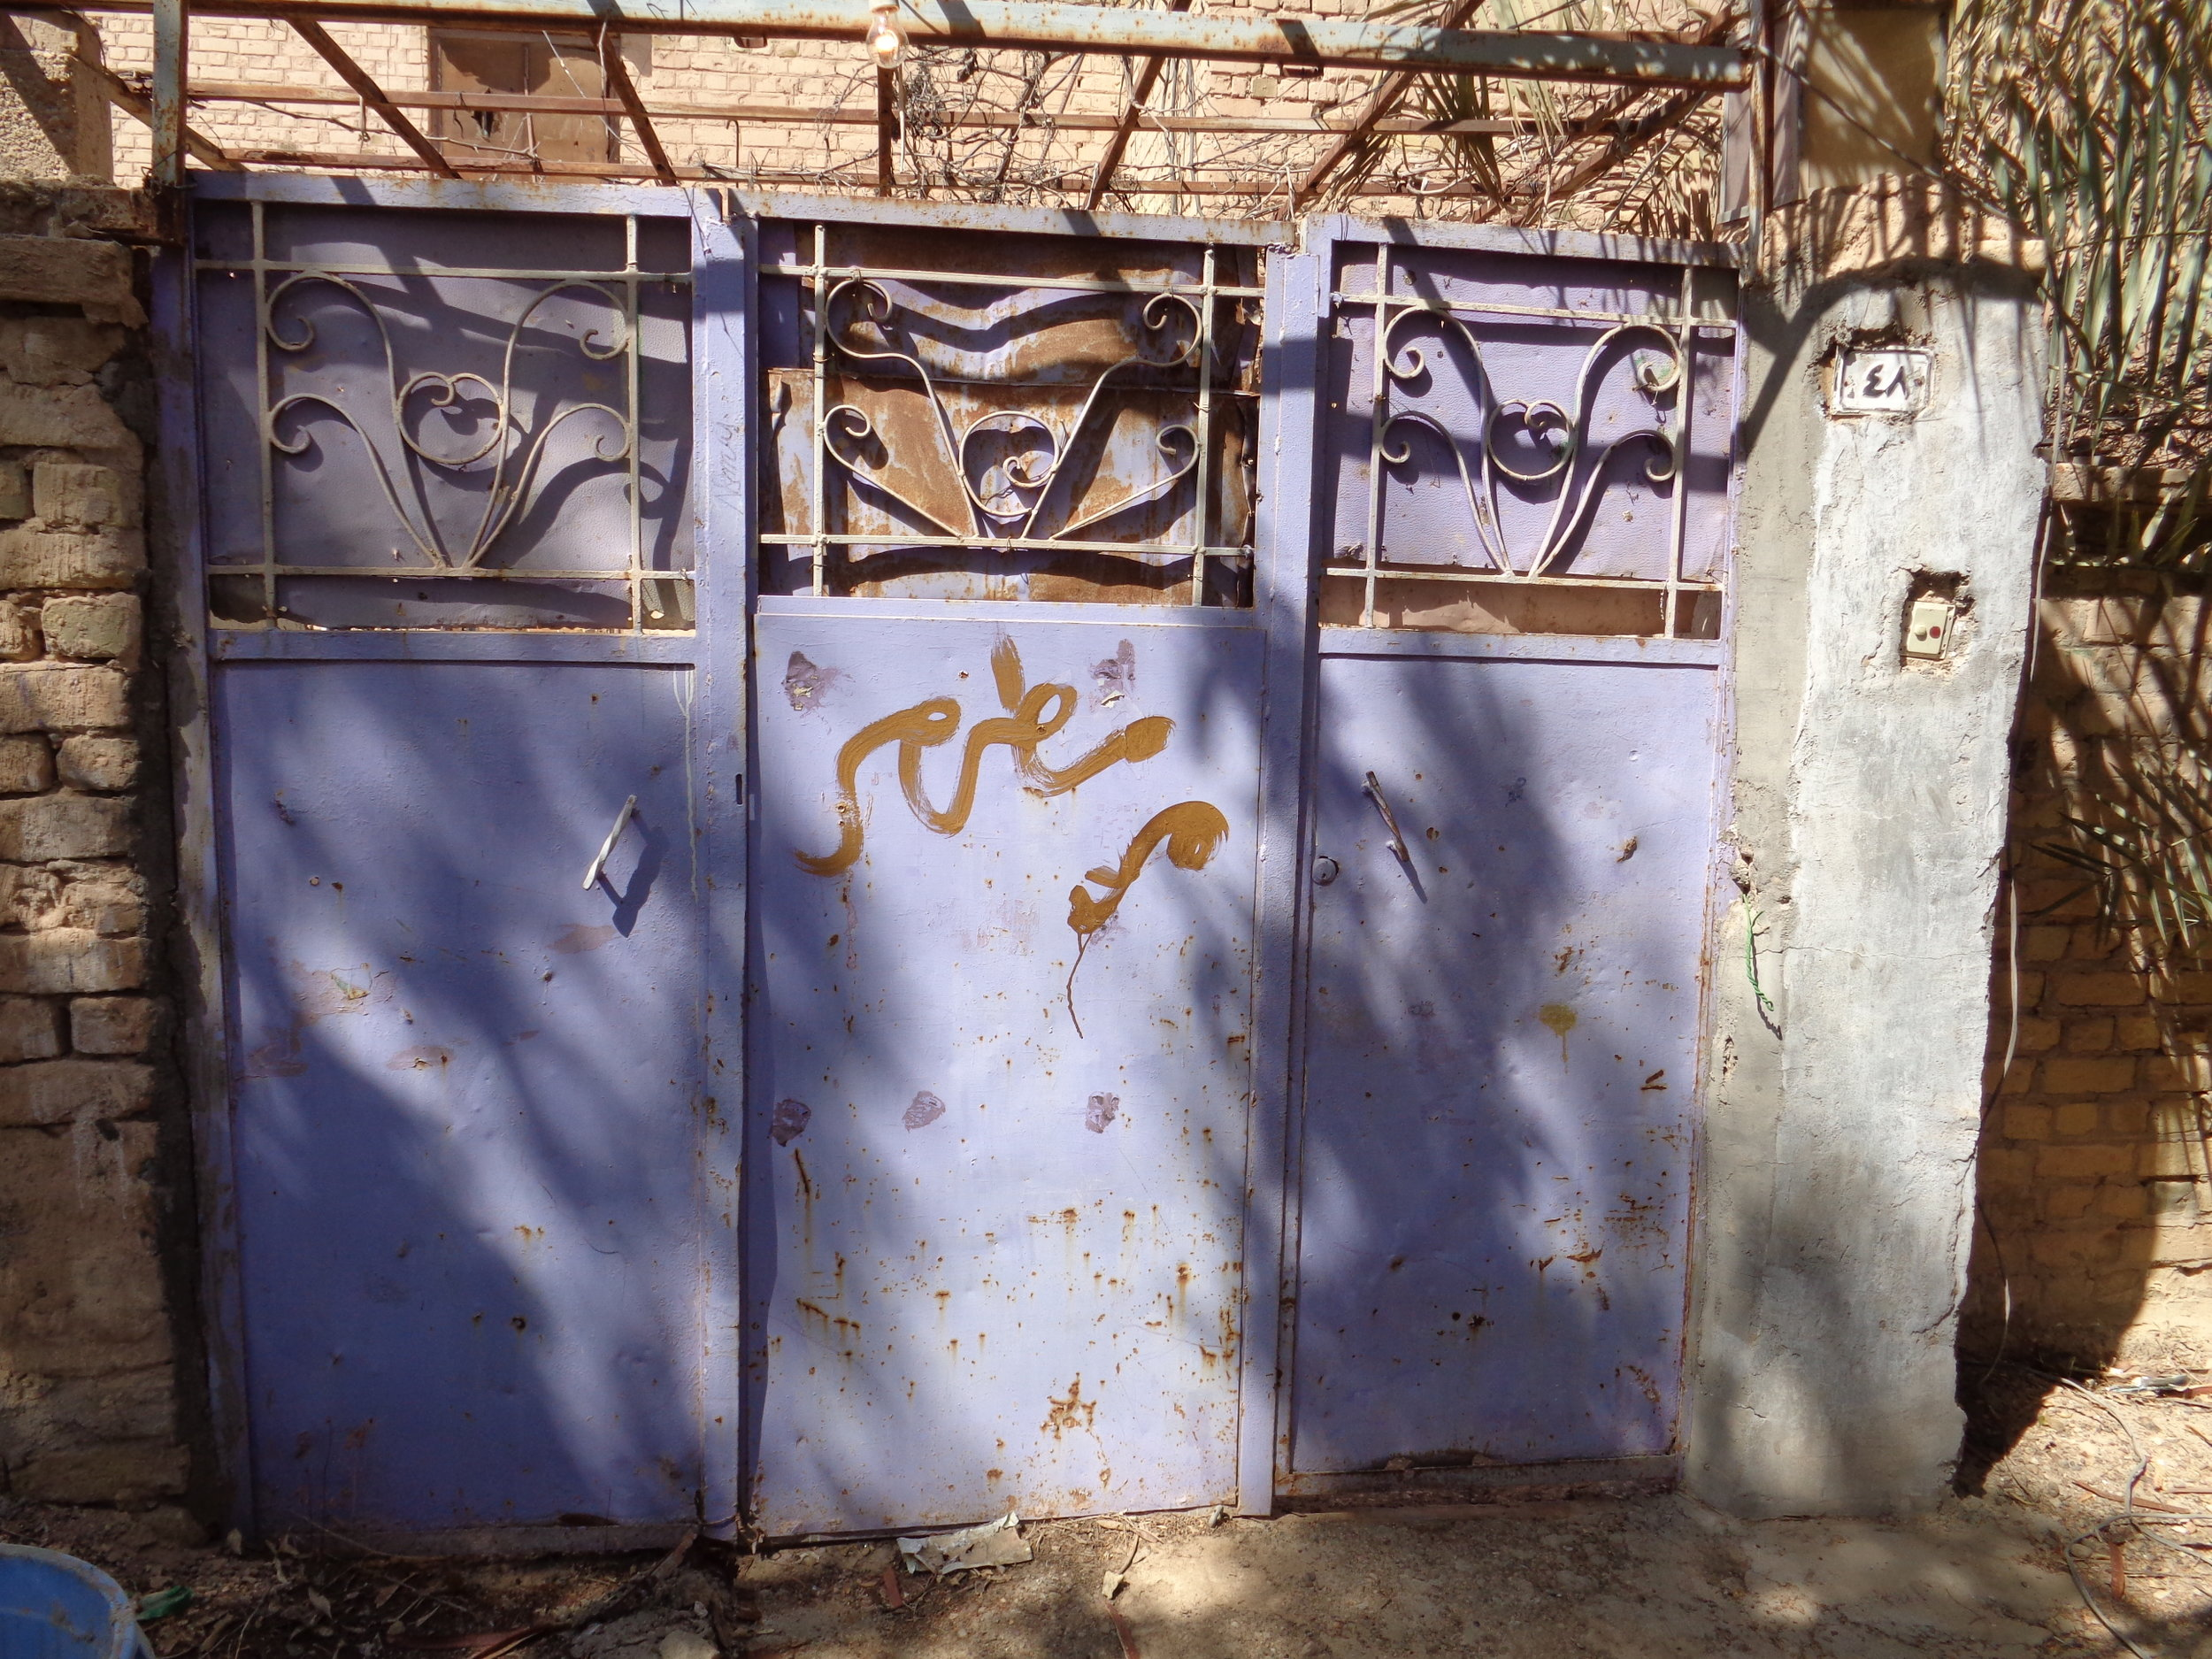 "When Iraqi security forces finally entered the town earlier this year, they discovered that it was filled with improvised explosive devices (IEDs). One army officer told RI that more than half of all homes contained IEDs, rigged to kill both soldiers and civilians. As homes are deemed safe by IED removal teams, they are marked ""clear"" in red spray-paint."